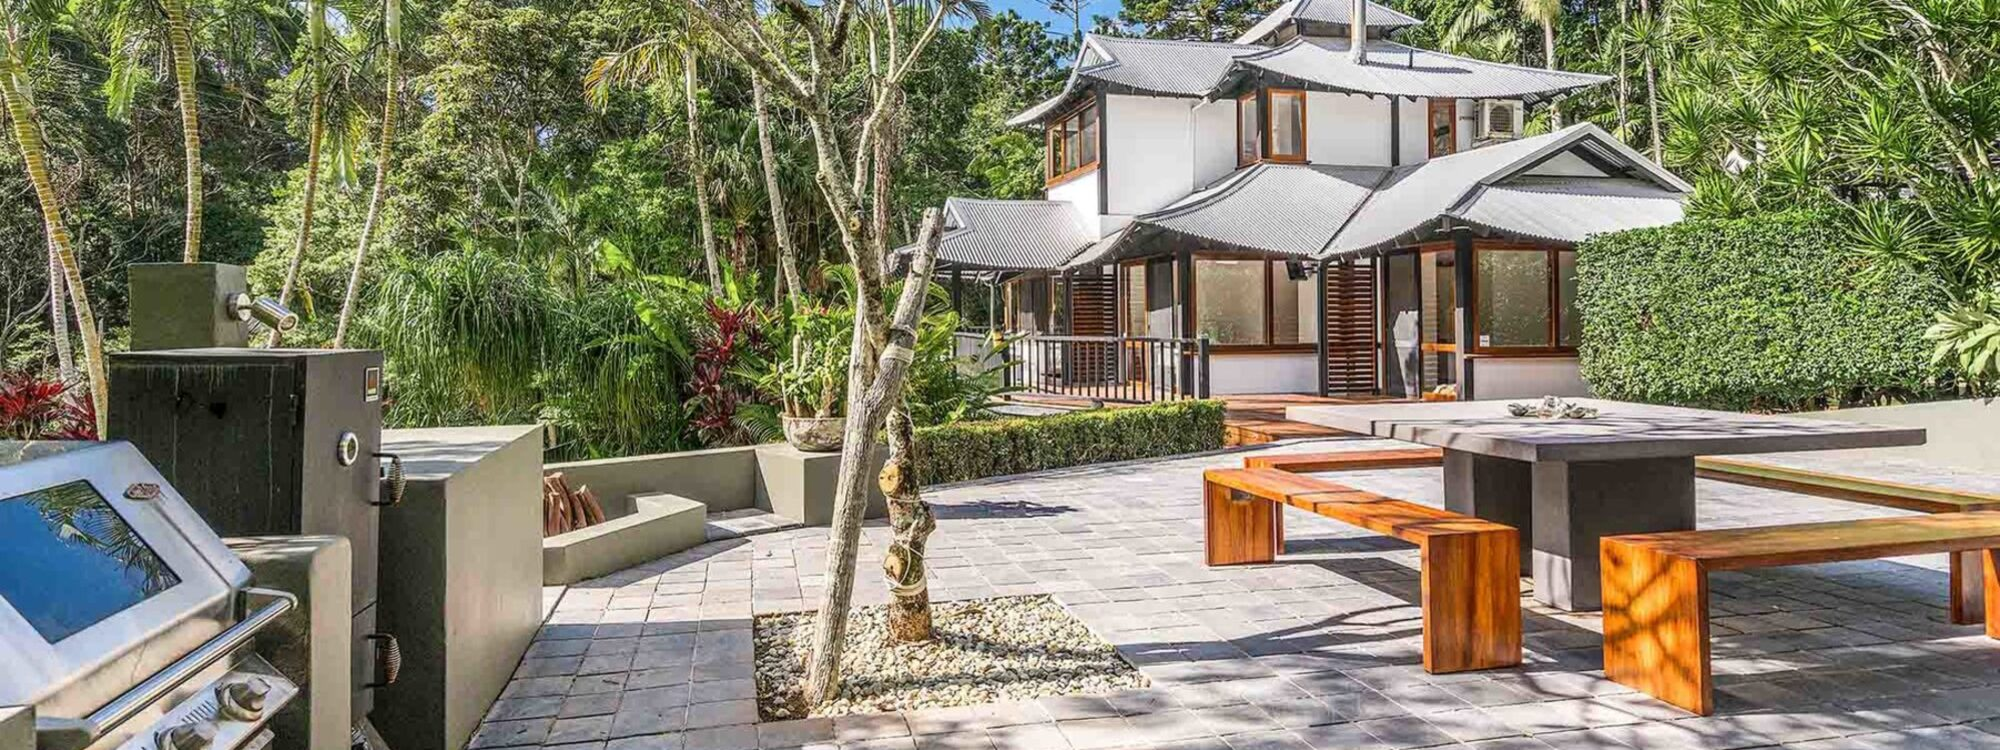 Ourmuli - Byron Bay - Outdoor Entertaining Area b